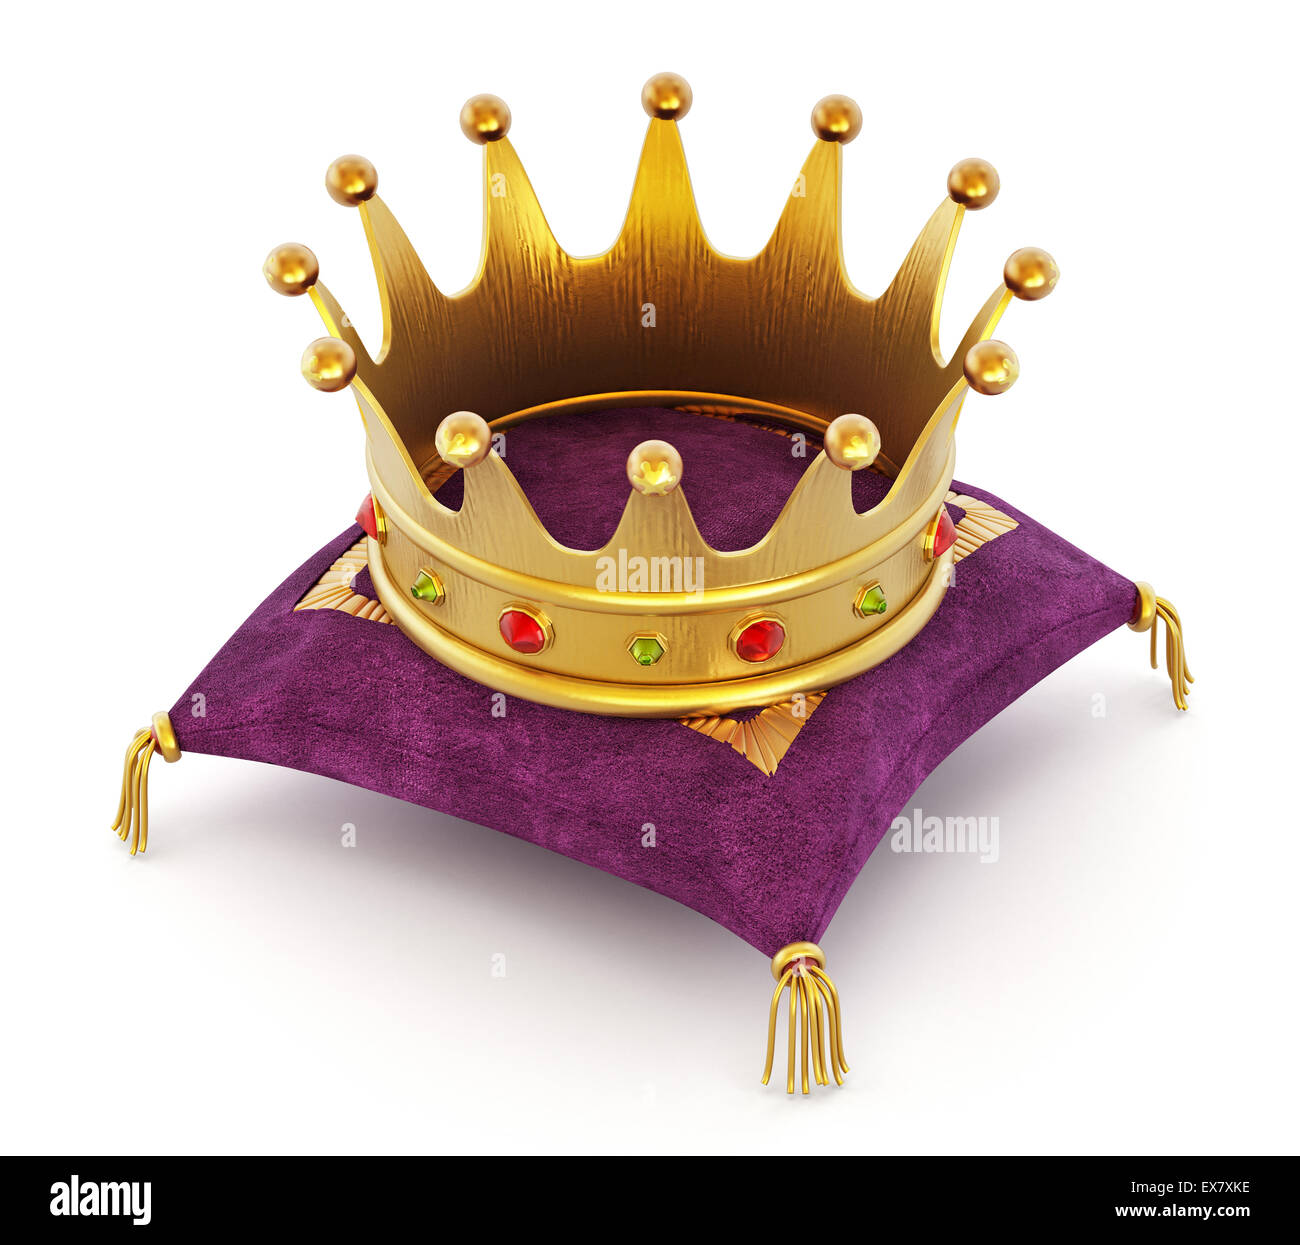 Gold Crown On The Purple Pillow Isolated White Background